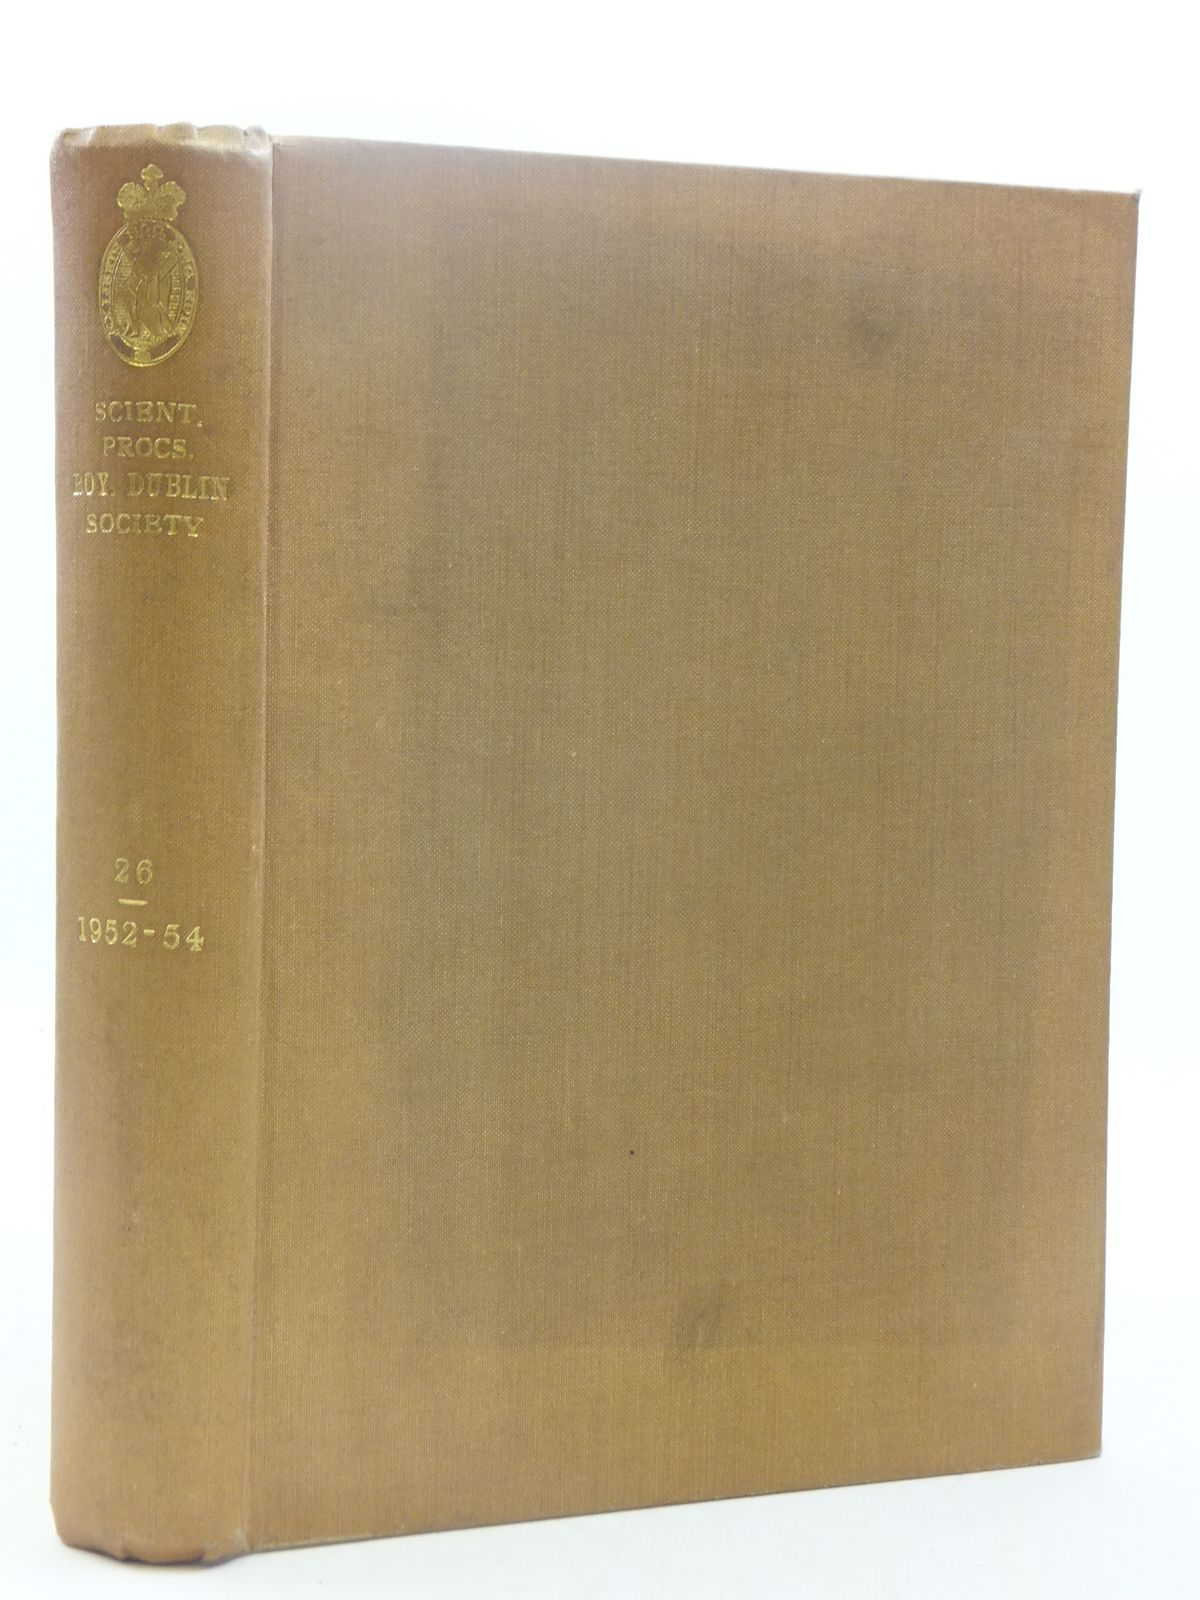 Photo of THE SCIENTIFIC PROCEEDINGS OF THE ROYAL DUBLIN SOCIETY VOLUME 26 (1952-54) published by Royal Dublin Society (STOCK CODE: 1605206)  for sale by Stella & Rose's Books